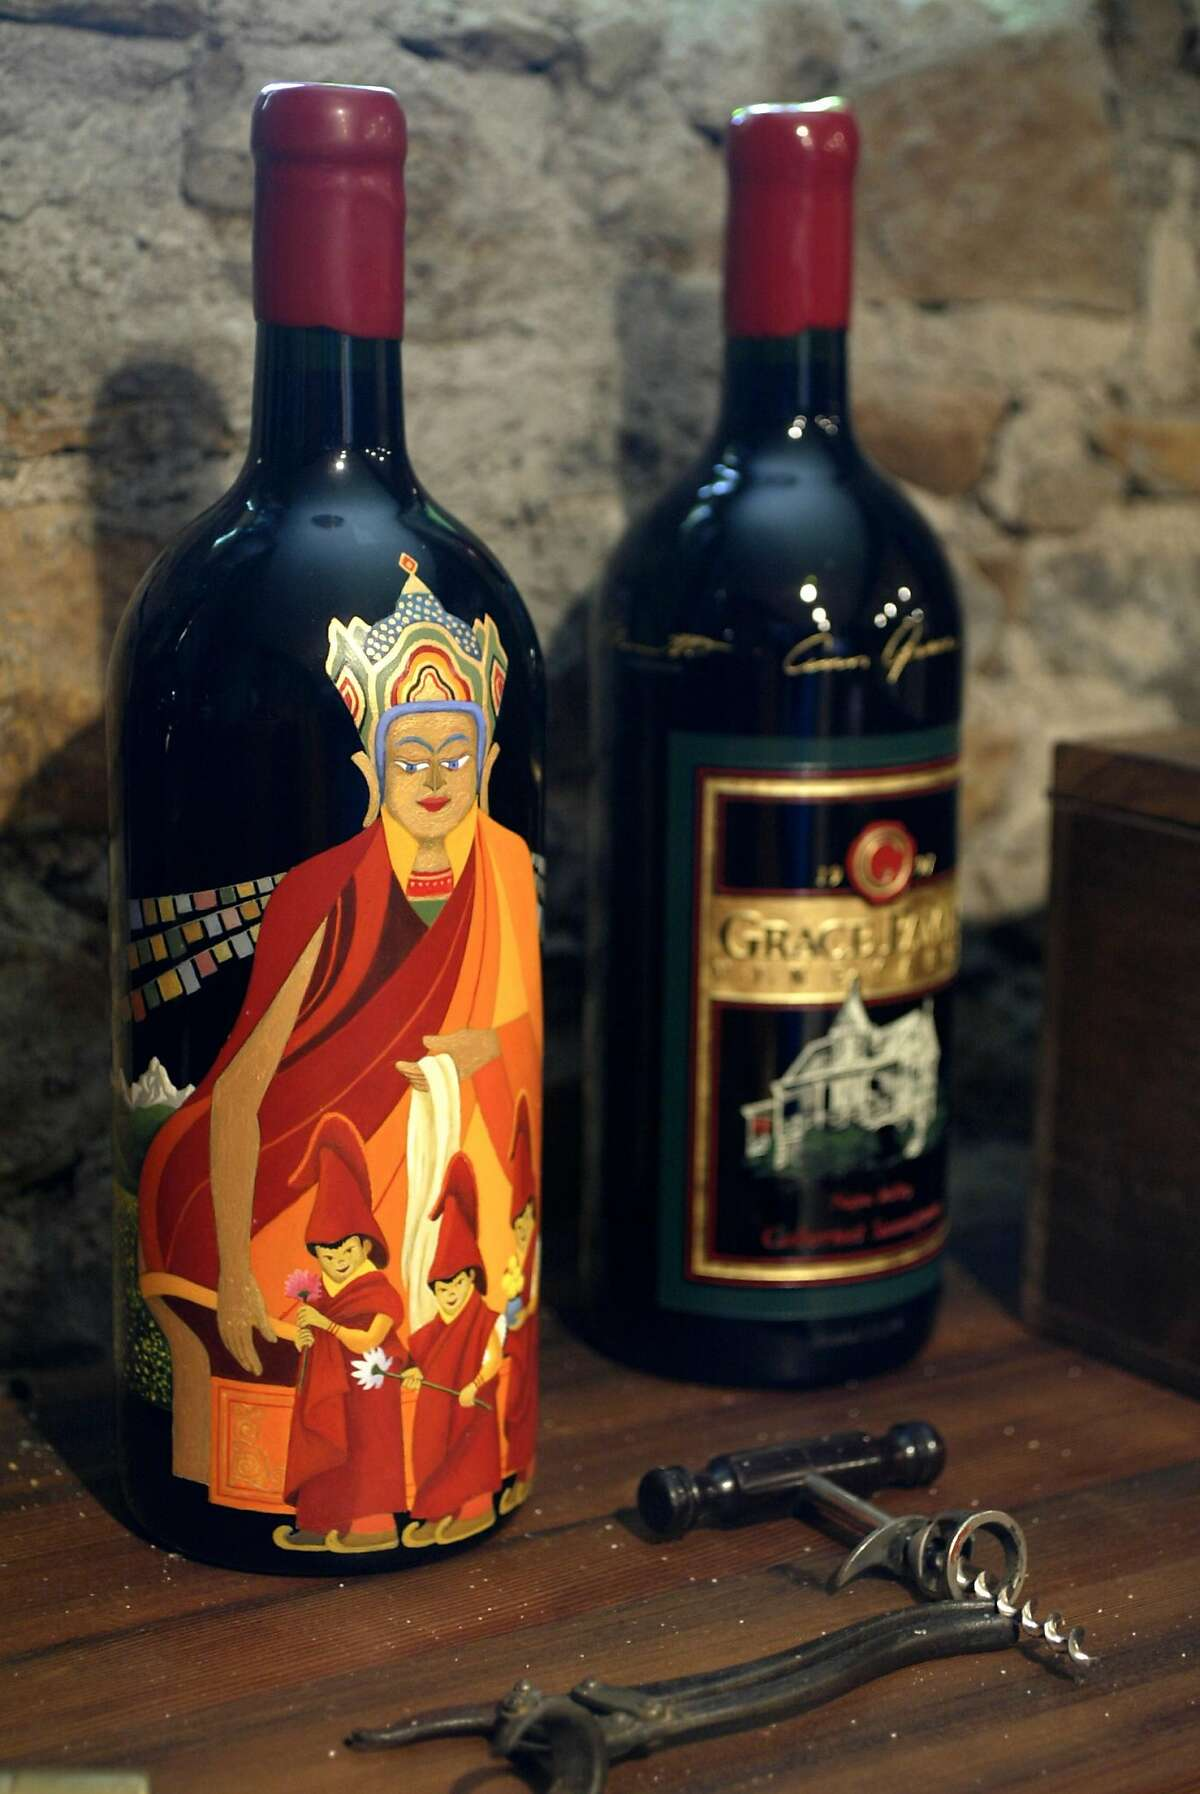 GRACE03240_cl.jpg Grace Family Winery in St. Helena. Bottles of etched and specially painted Grace Family wine bottles. Photo of a bottle on the left, painted by local artist in Calistoga, Lowell Herrero. It is a painting of the likeness of Buddha. It sold for $30, 000 and and the bottle was given back to remain in the Grace Family Winery collection. The person wanted to donate the money but wanted the bottle to stay in the Grace Family collection. Event on 5/17/04 in St. Helena. Craig Lee / The Chronicle Ann and Dick Grace bought their St. Helena home in 1975 and planted a small Cabernet vineyard there. Today, their wine helps raise funds for children. Ann and Dick Grace bought their St. Helena home in 1975 and planted a small Cabernet vineyard there. Today, their wine helps raise funds for children.